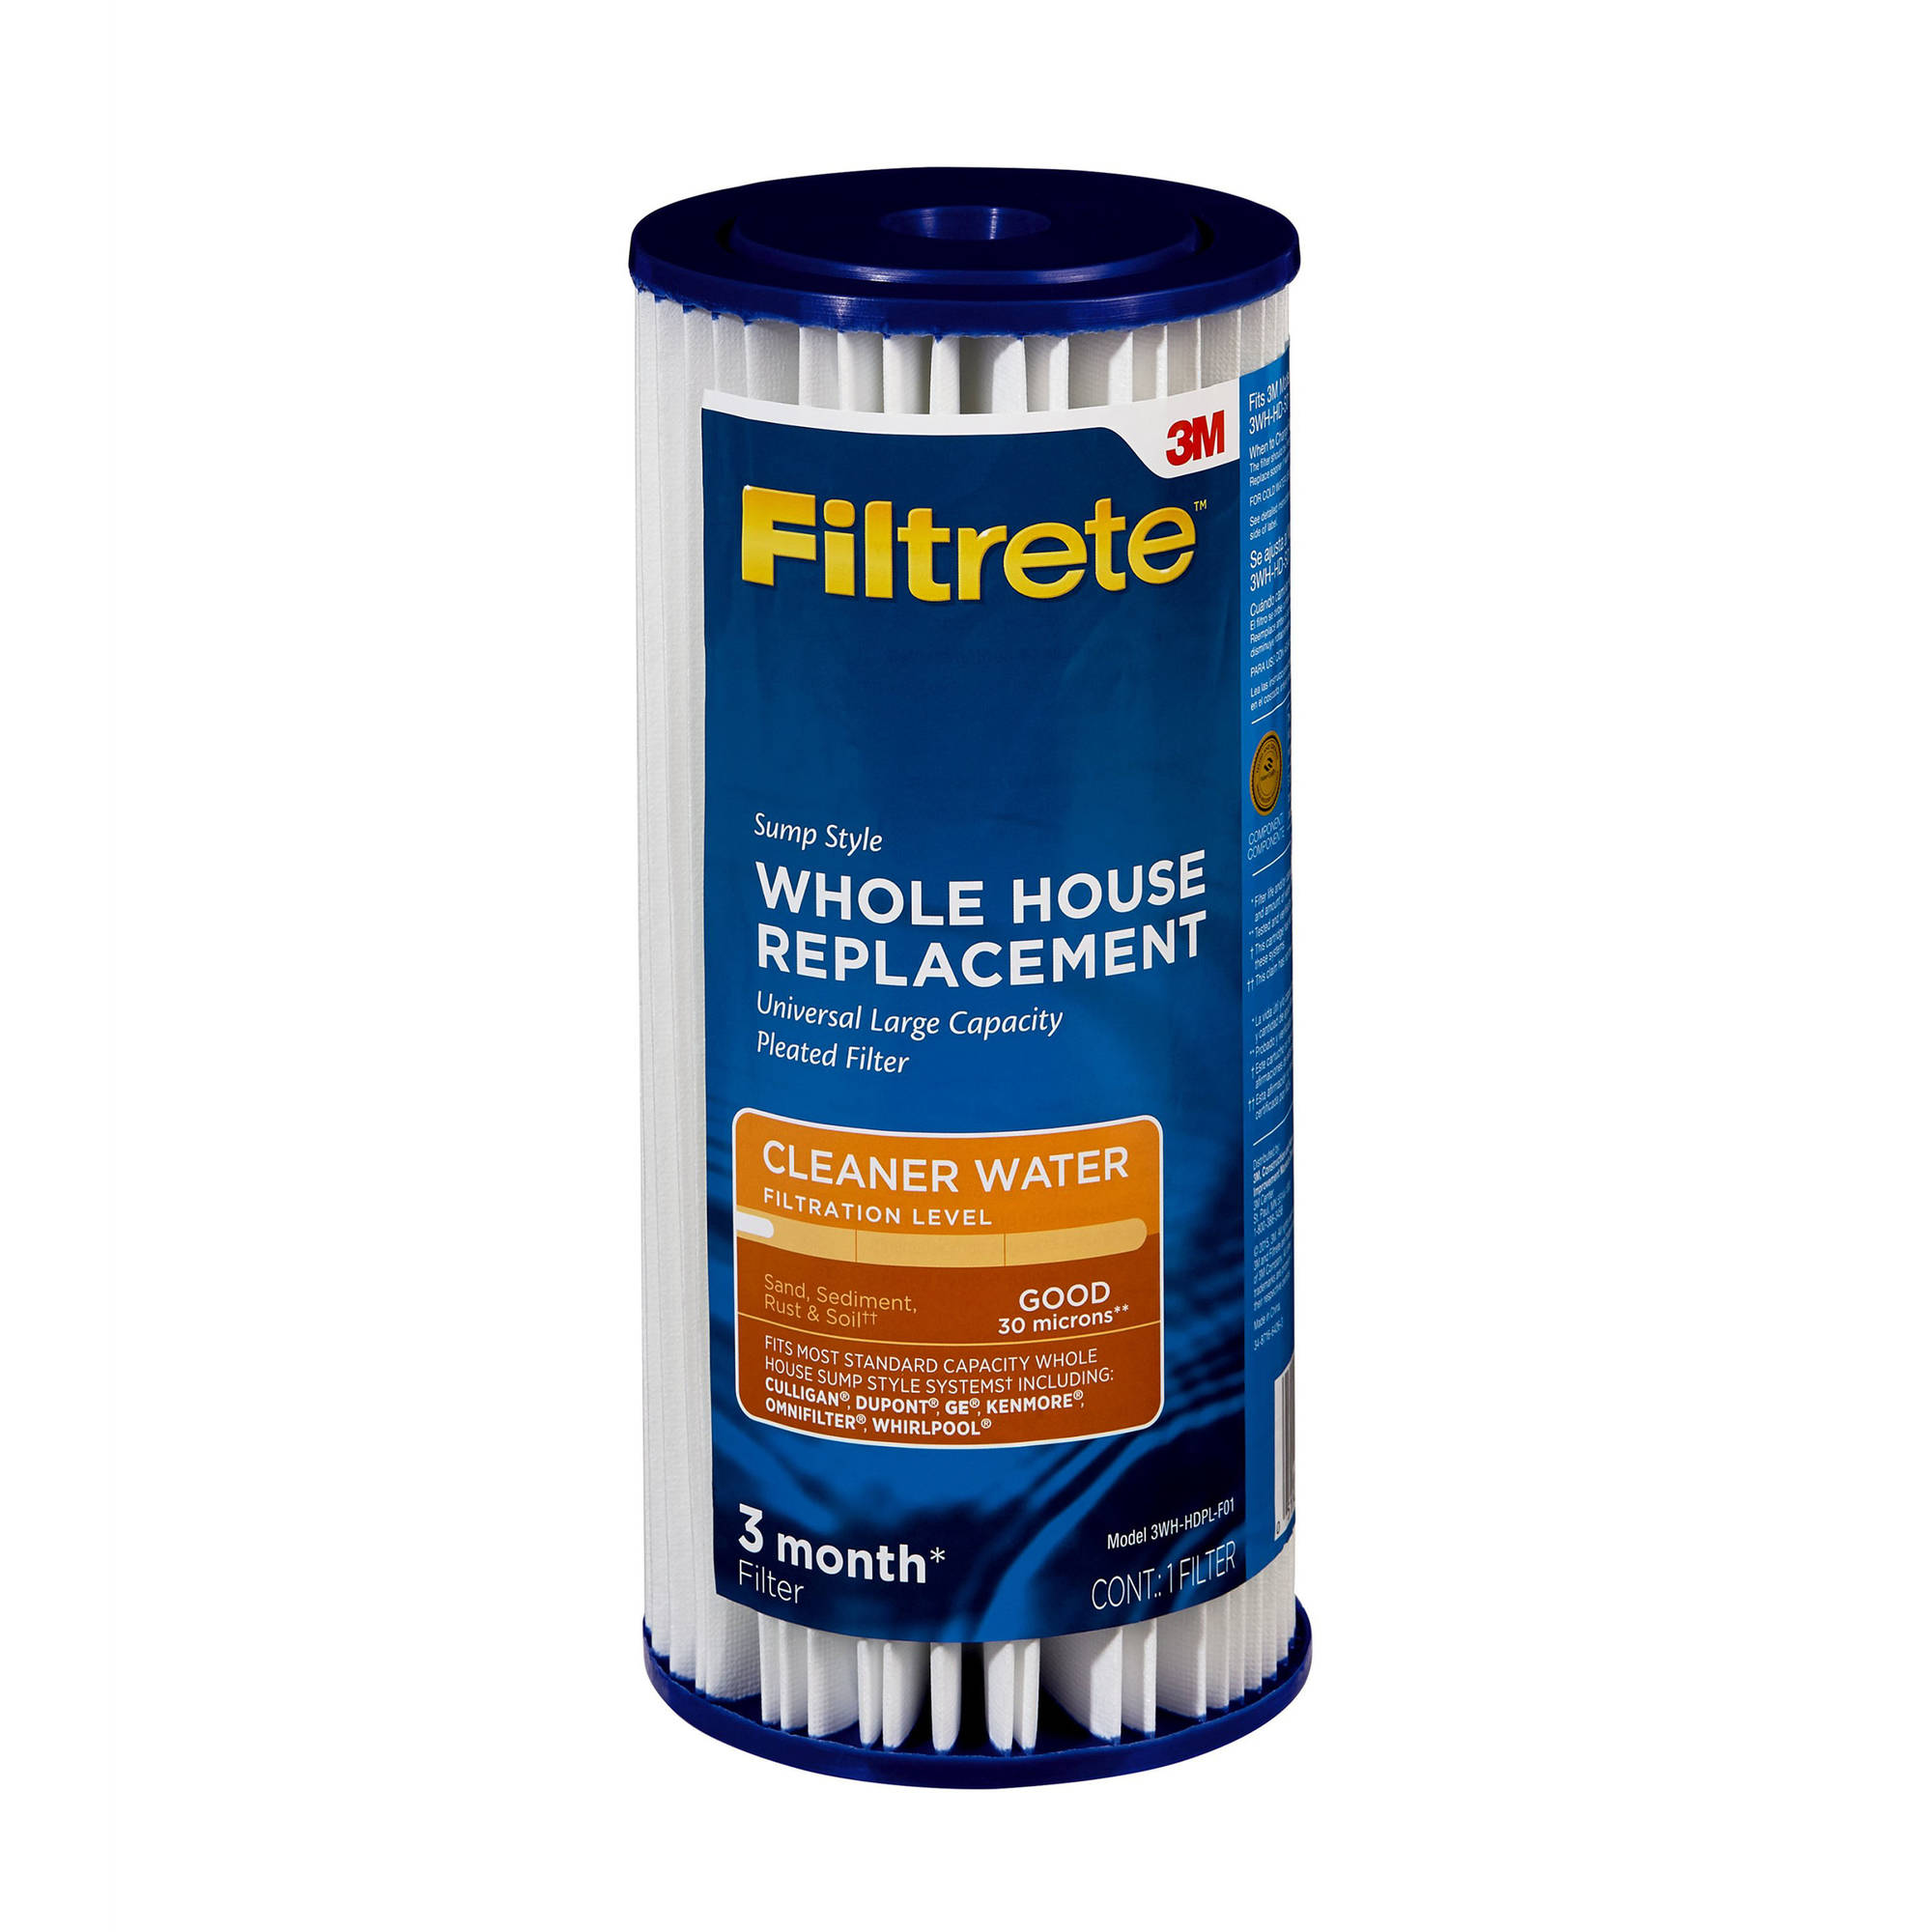 3M Filtrete Whole House Replacement Filter